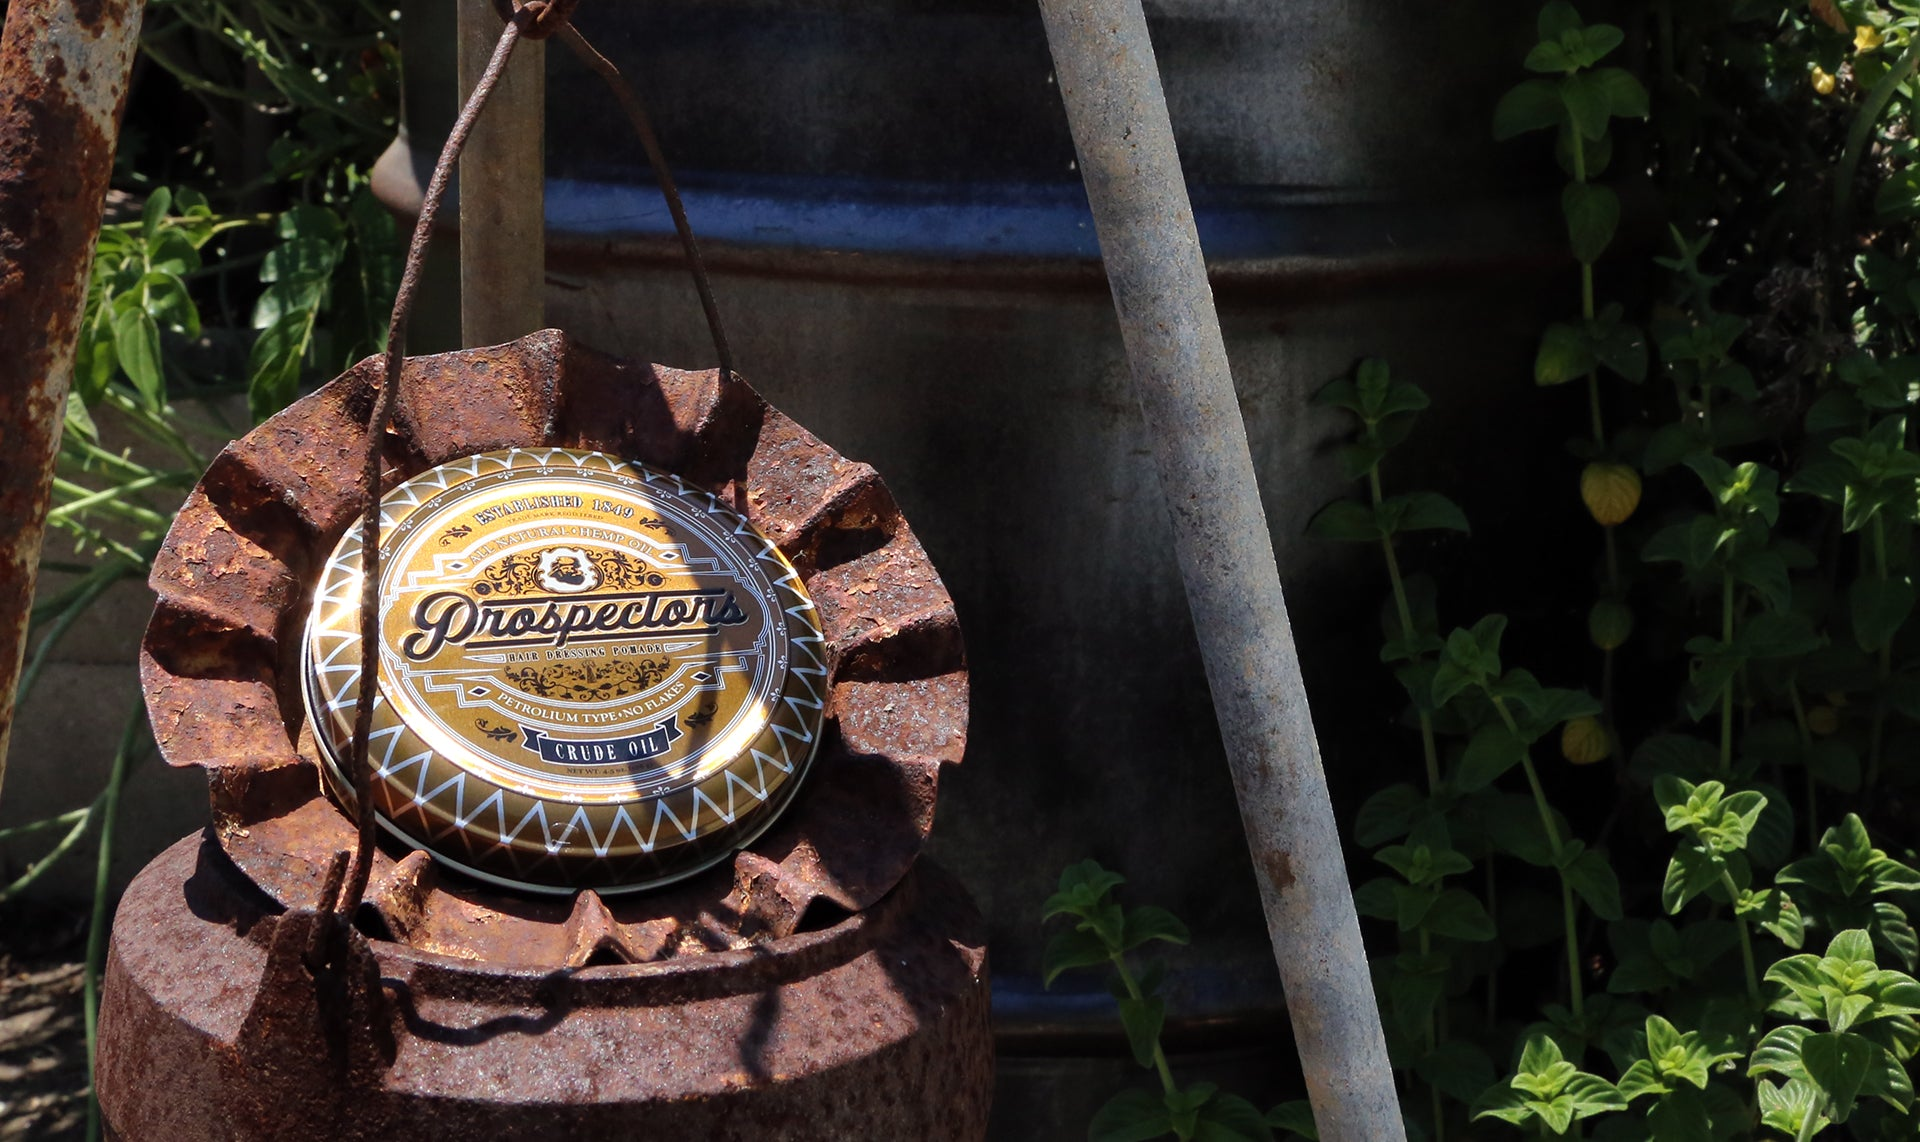 Prospectors Crude Oil oilbased pomade